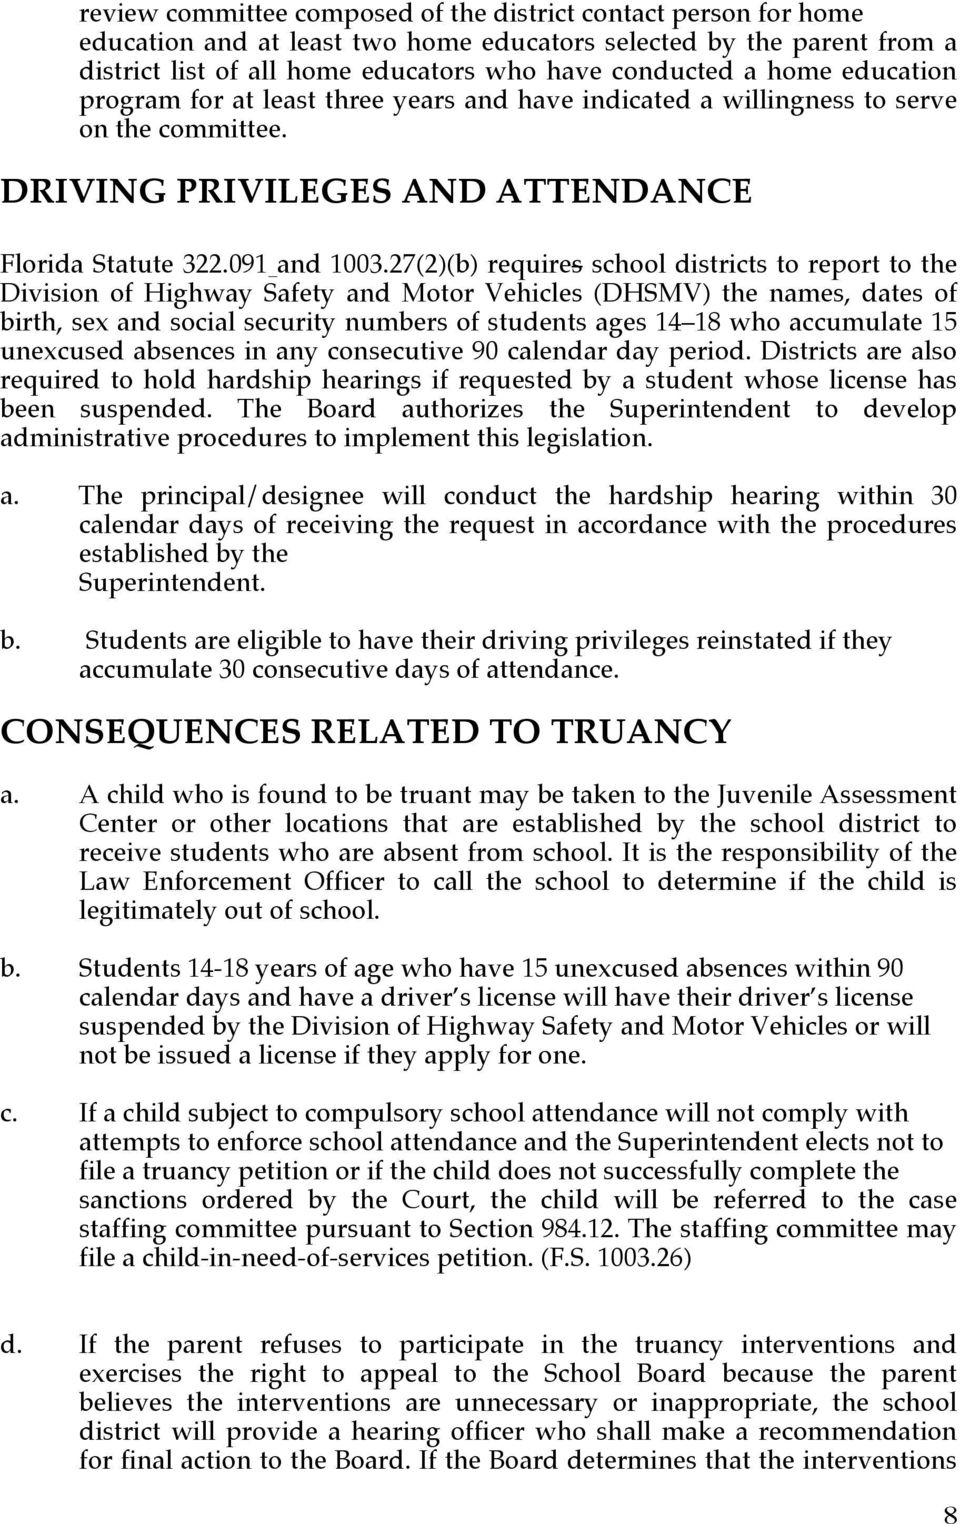 27(2)(b) requires school districts to report to the Division of Highway Safety and Motor Vehicles (DHSMV) the names, dates of birth, sex and social security numbers of students ages 14 18 who